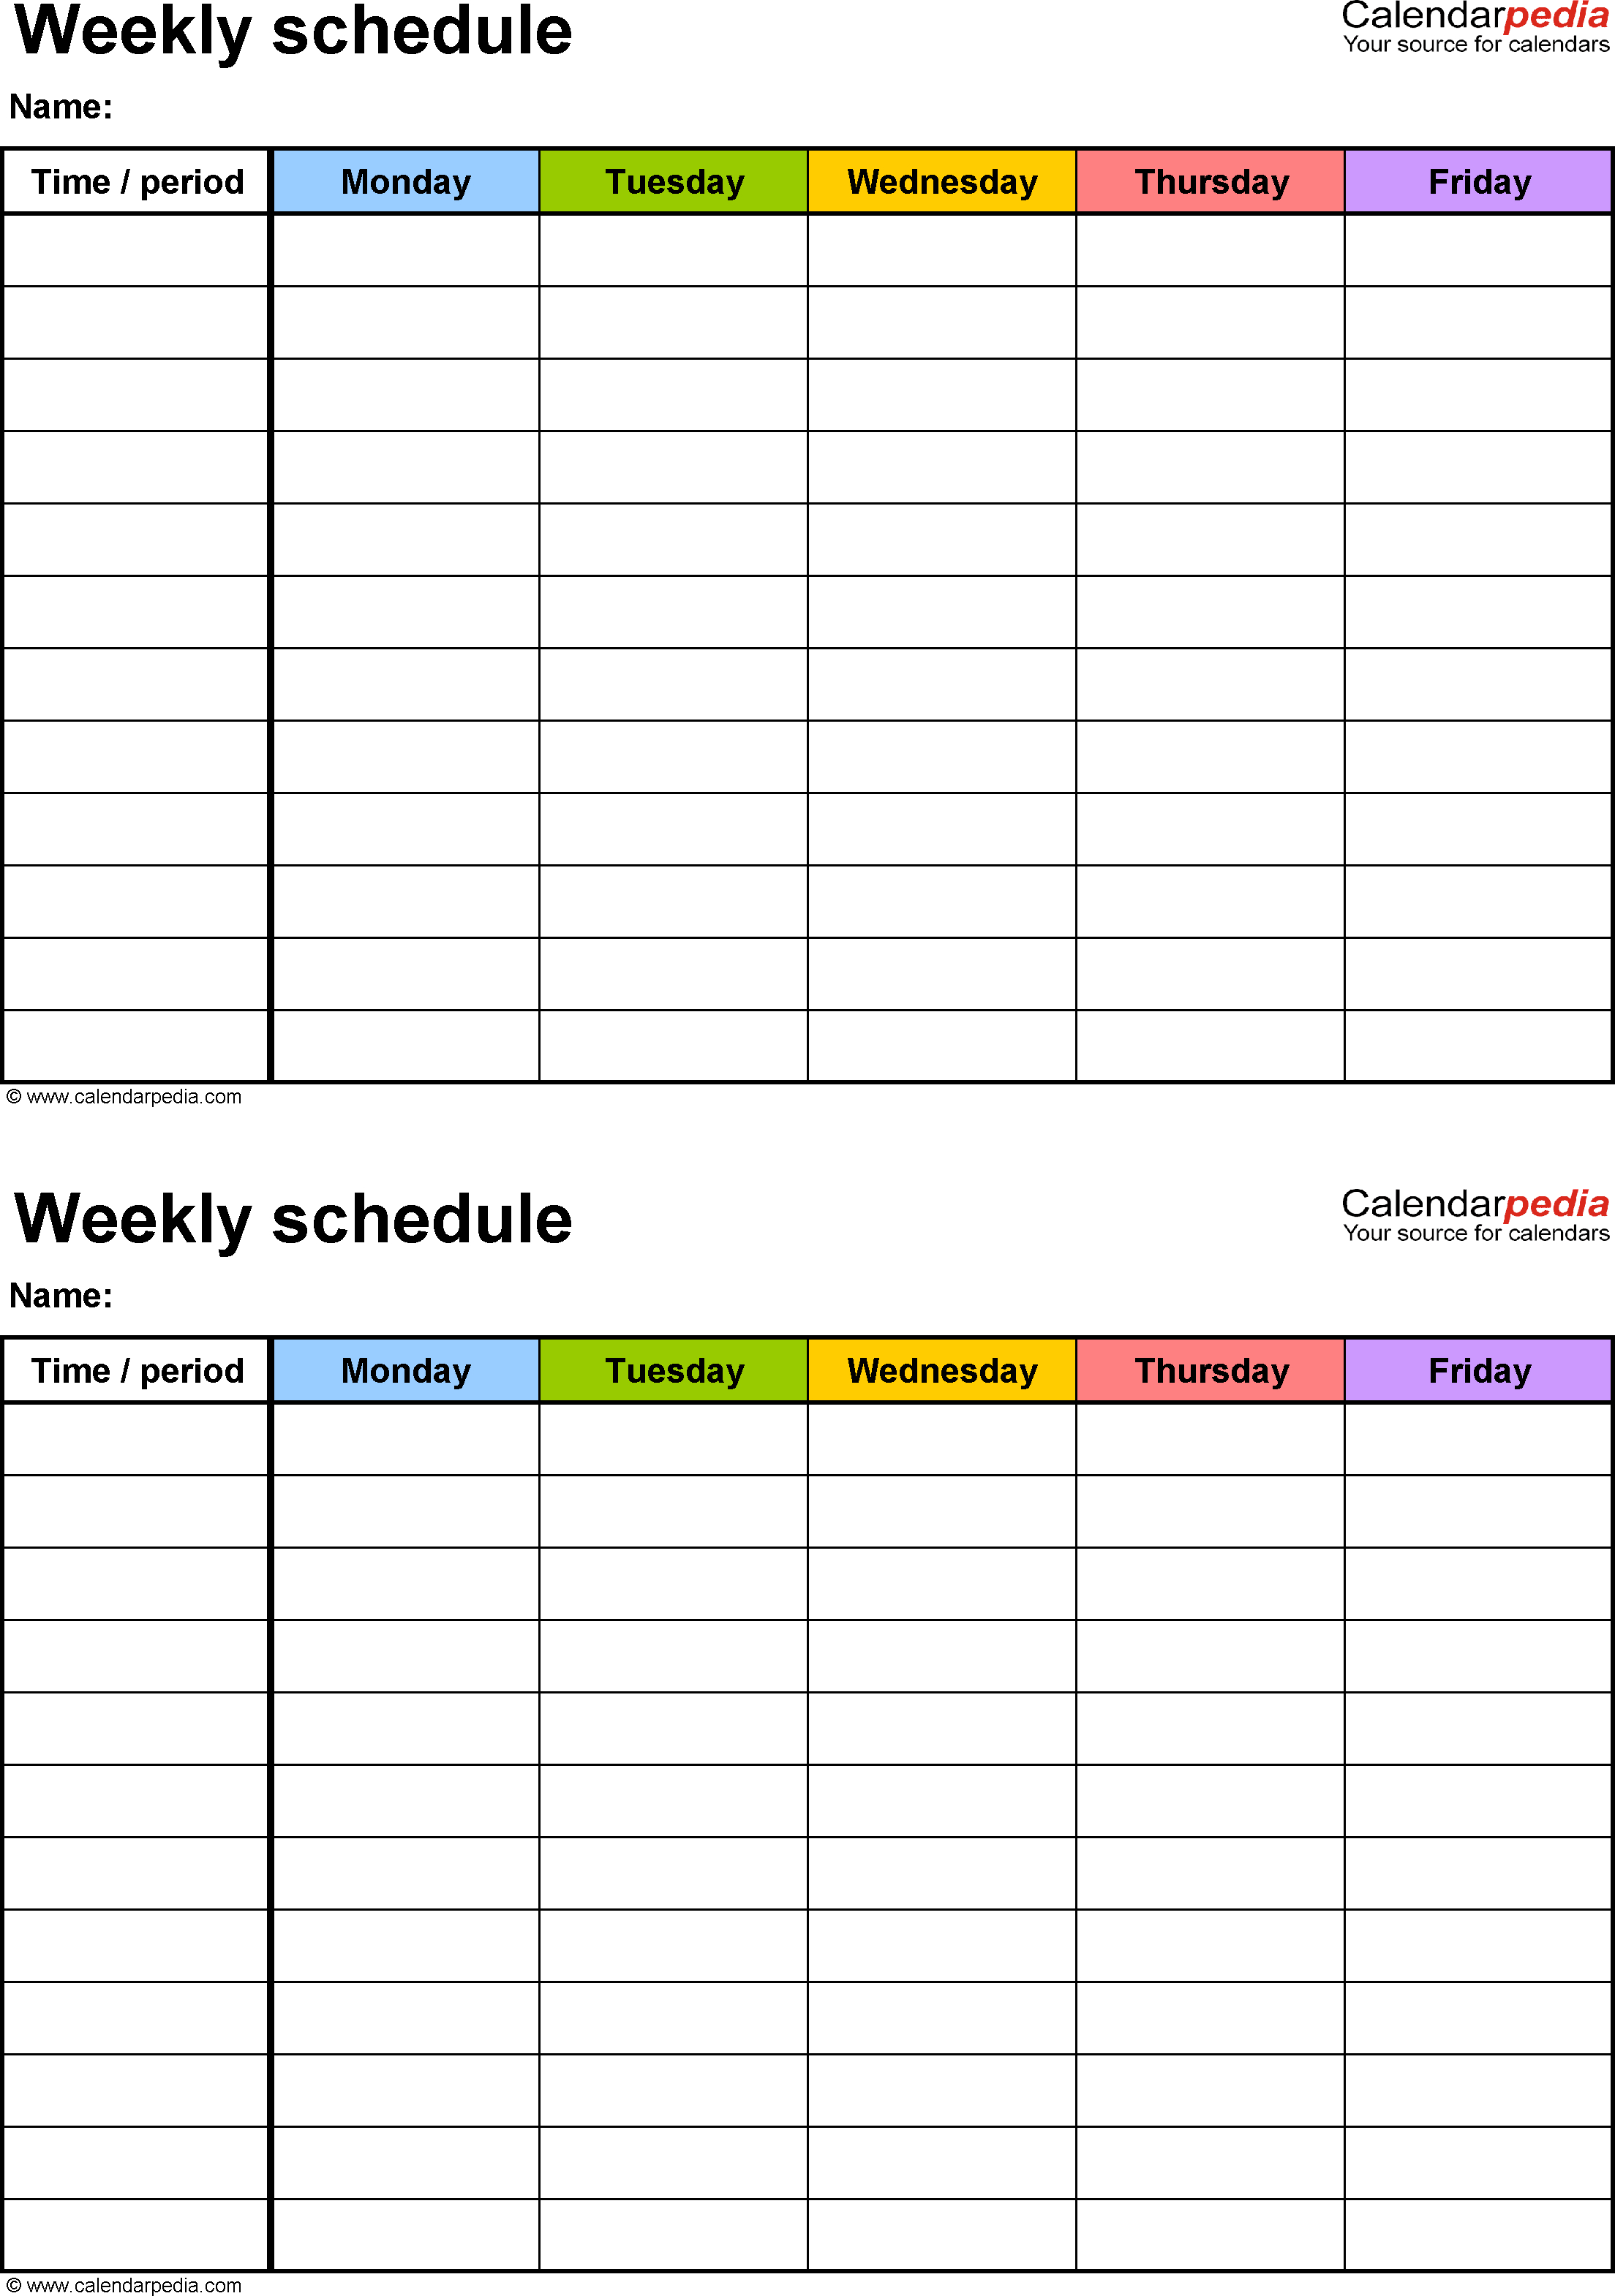 Free Weekly Schedule Templates For Excel - 18 Templates for Calendar Planner Template Excel